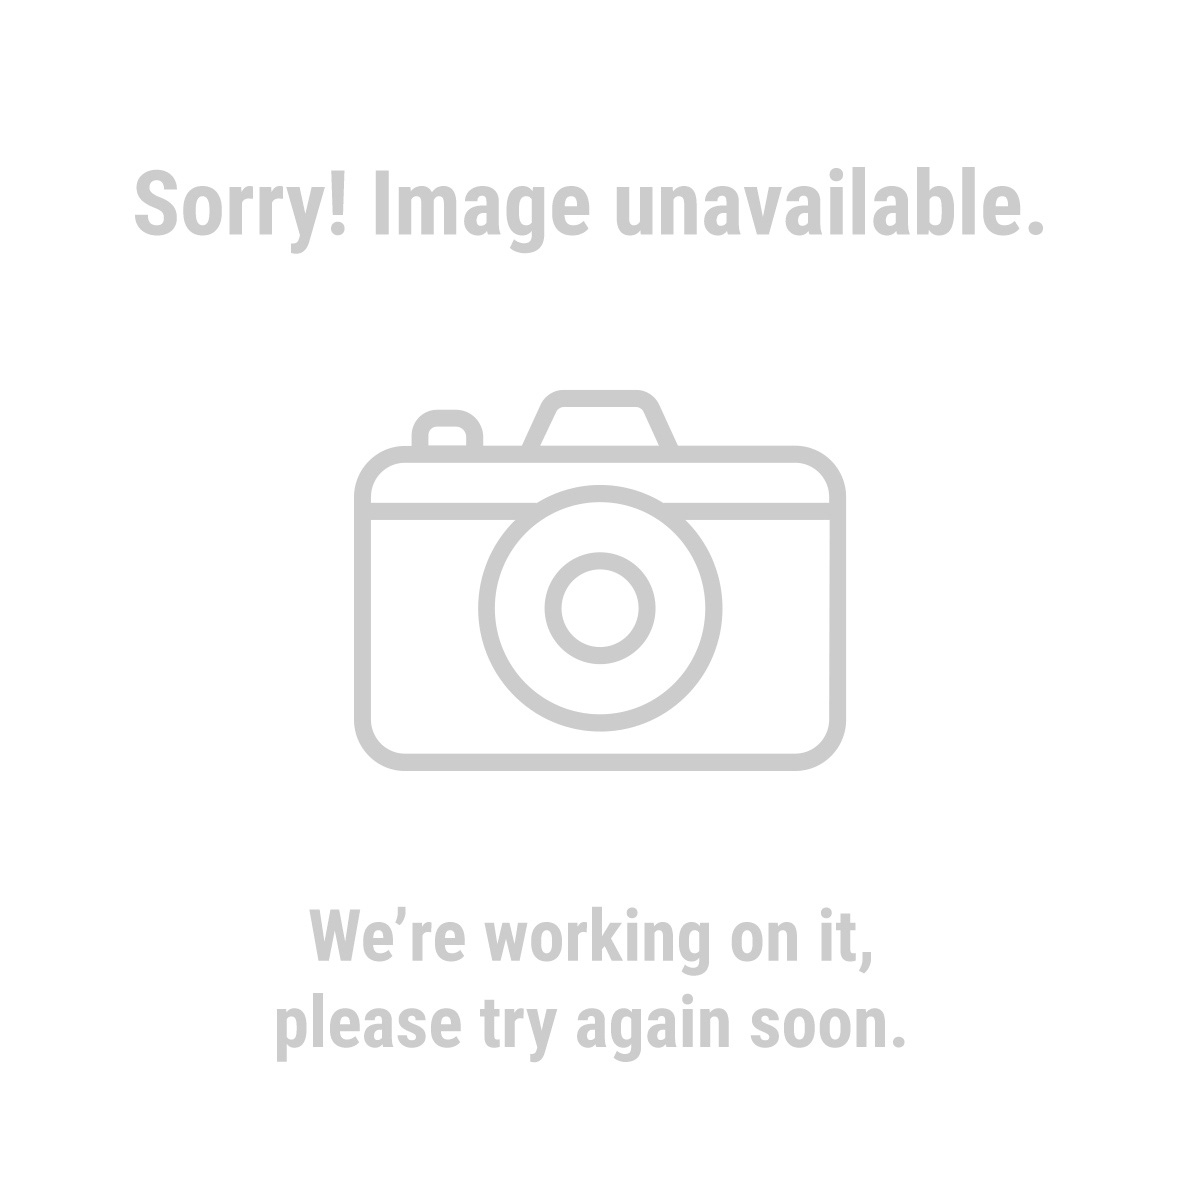 Central Pneumatic Industrial 40211 Compressed Air Dryer